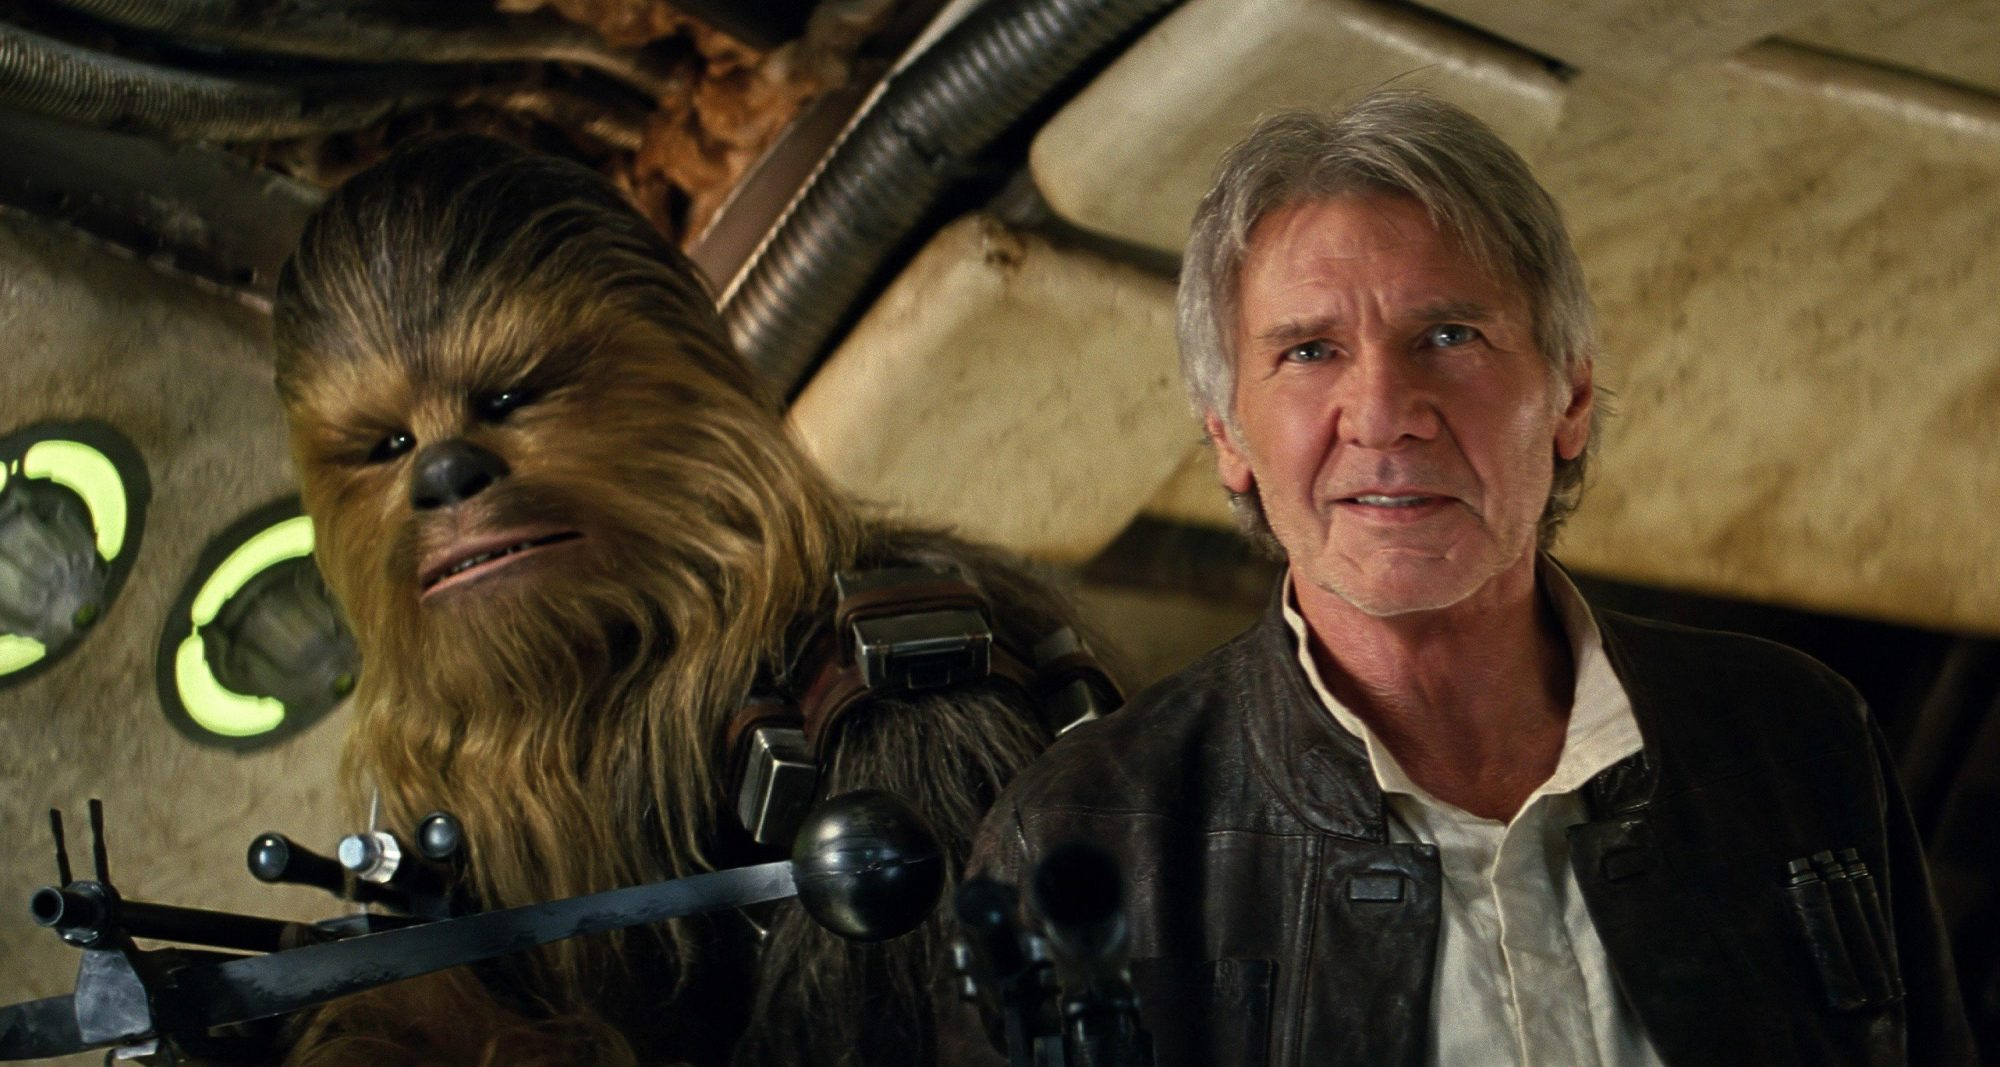 Star Wars: The Force Awakens  - Episode VII (2015)Chewbacca and Harrison Ford